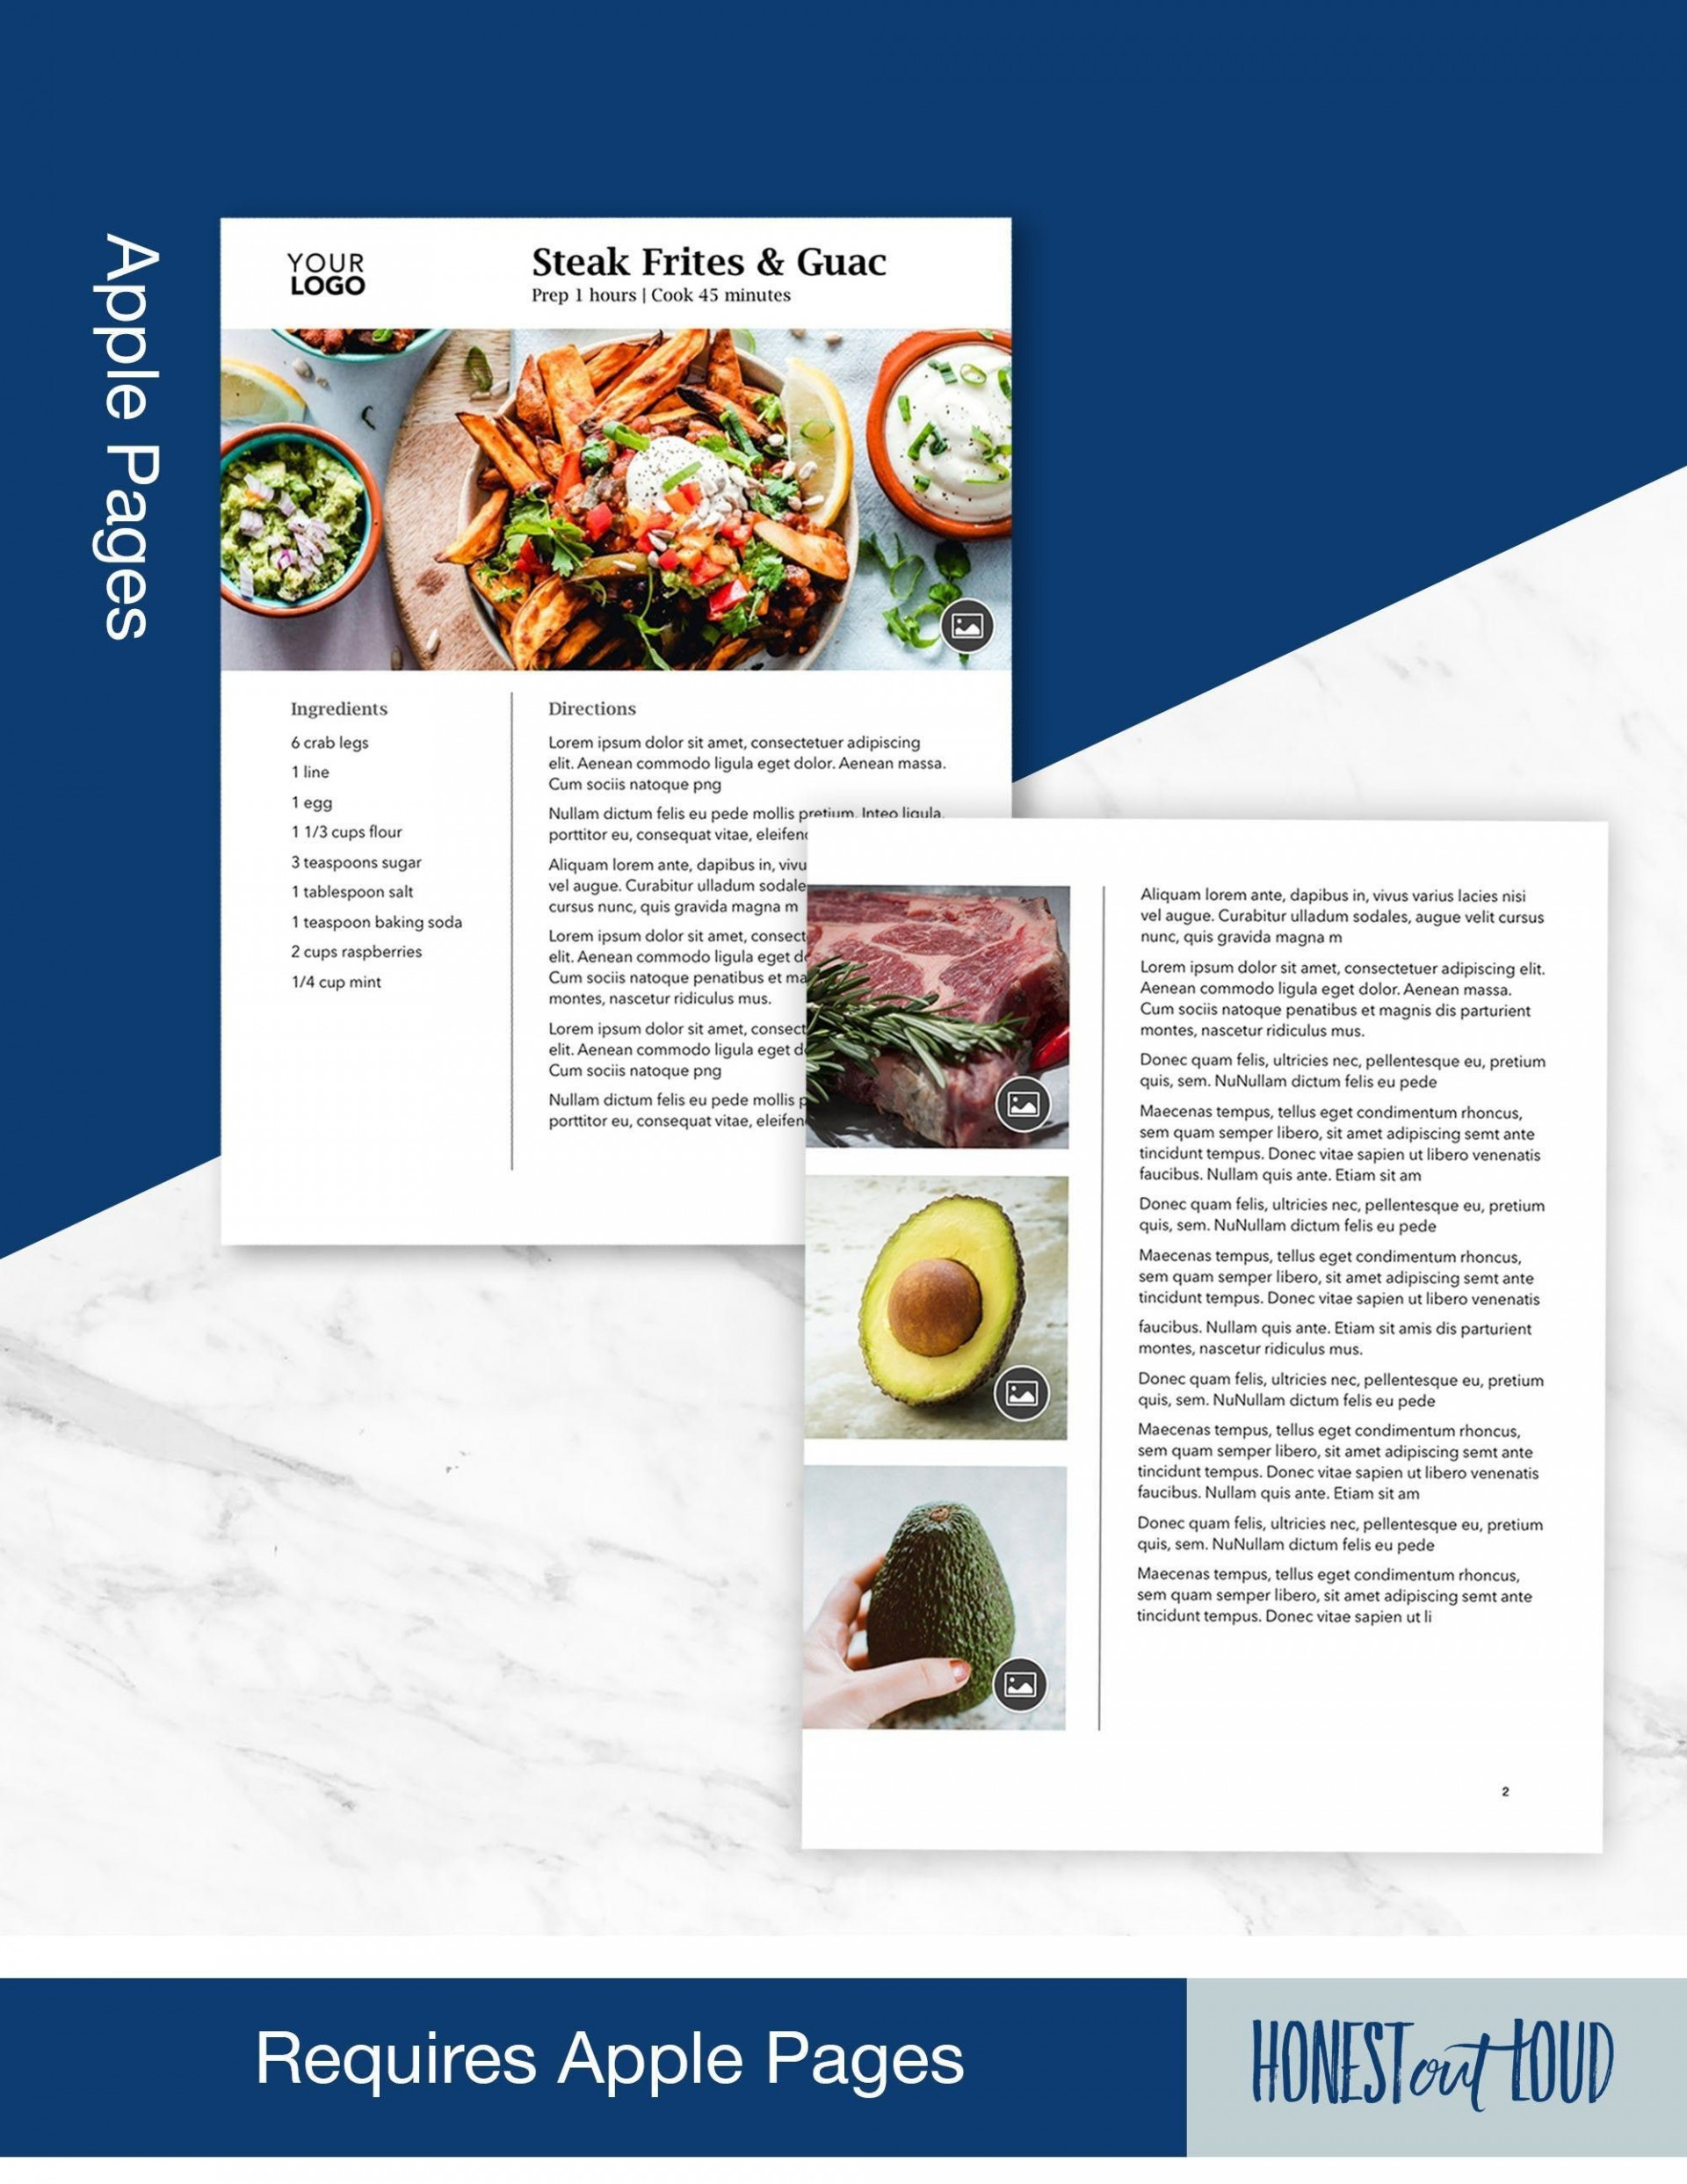 004 Fantastic Free Make Your Own Cookbook Template Download Concept 1920